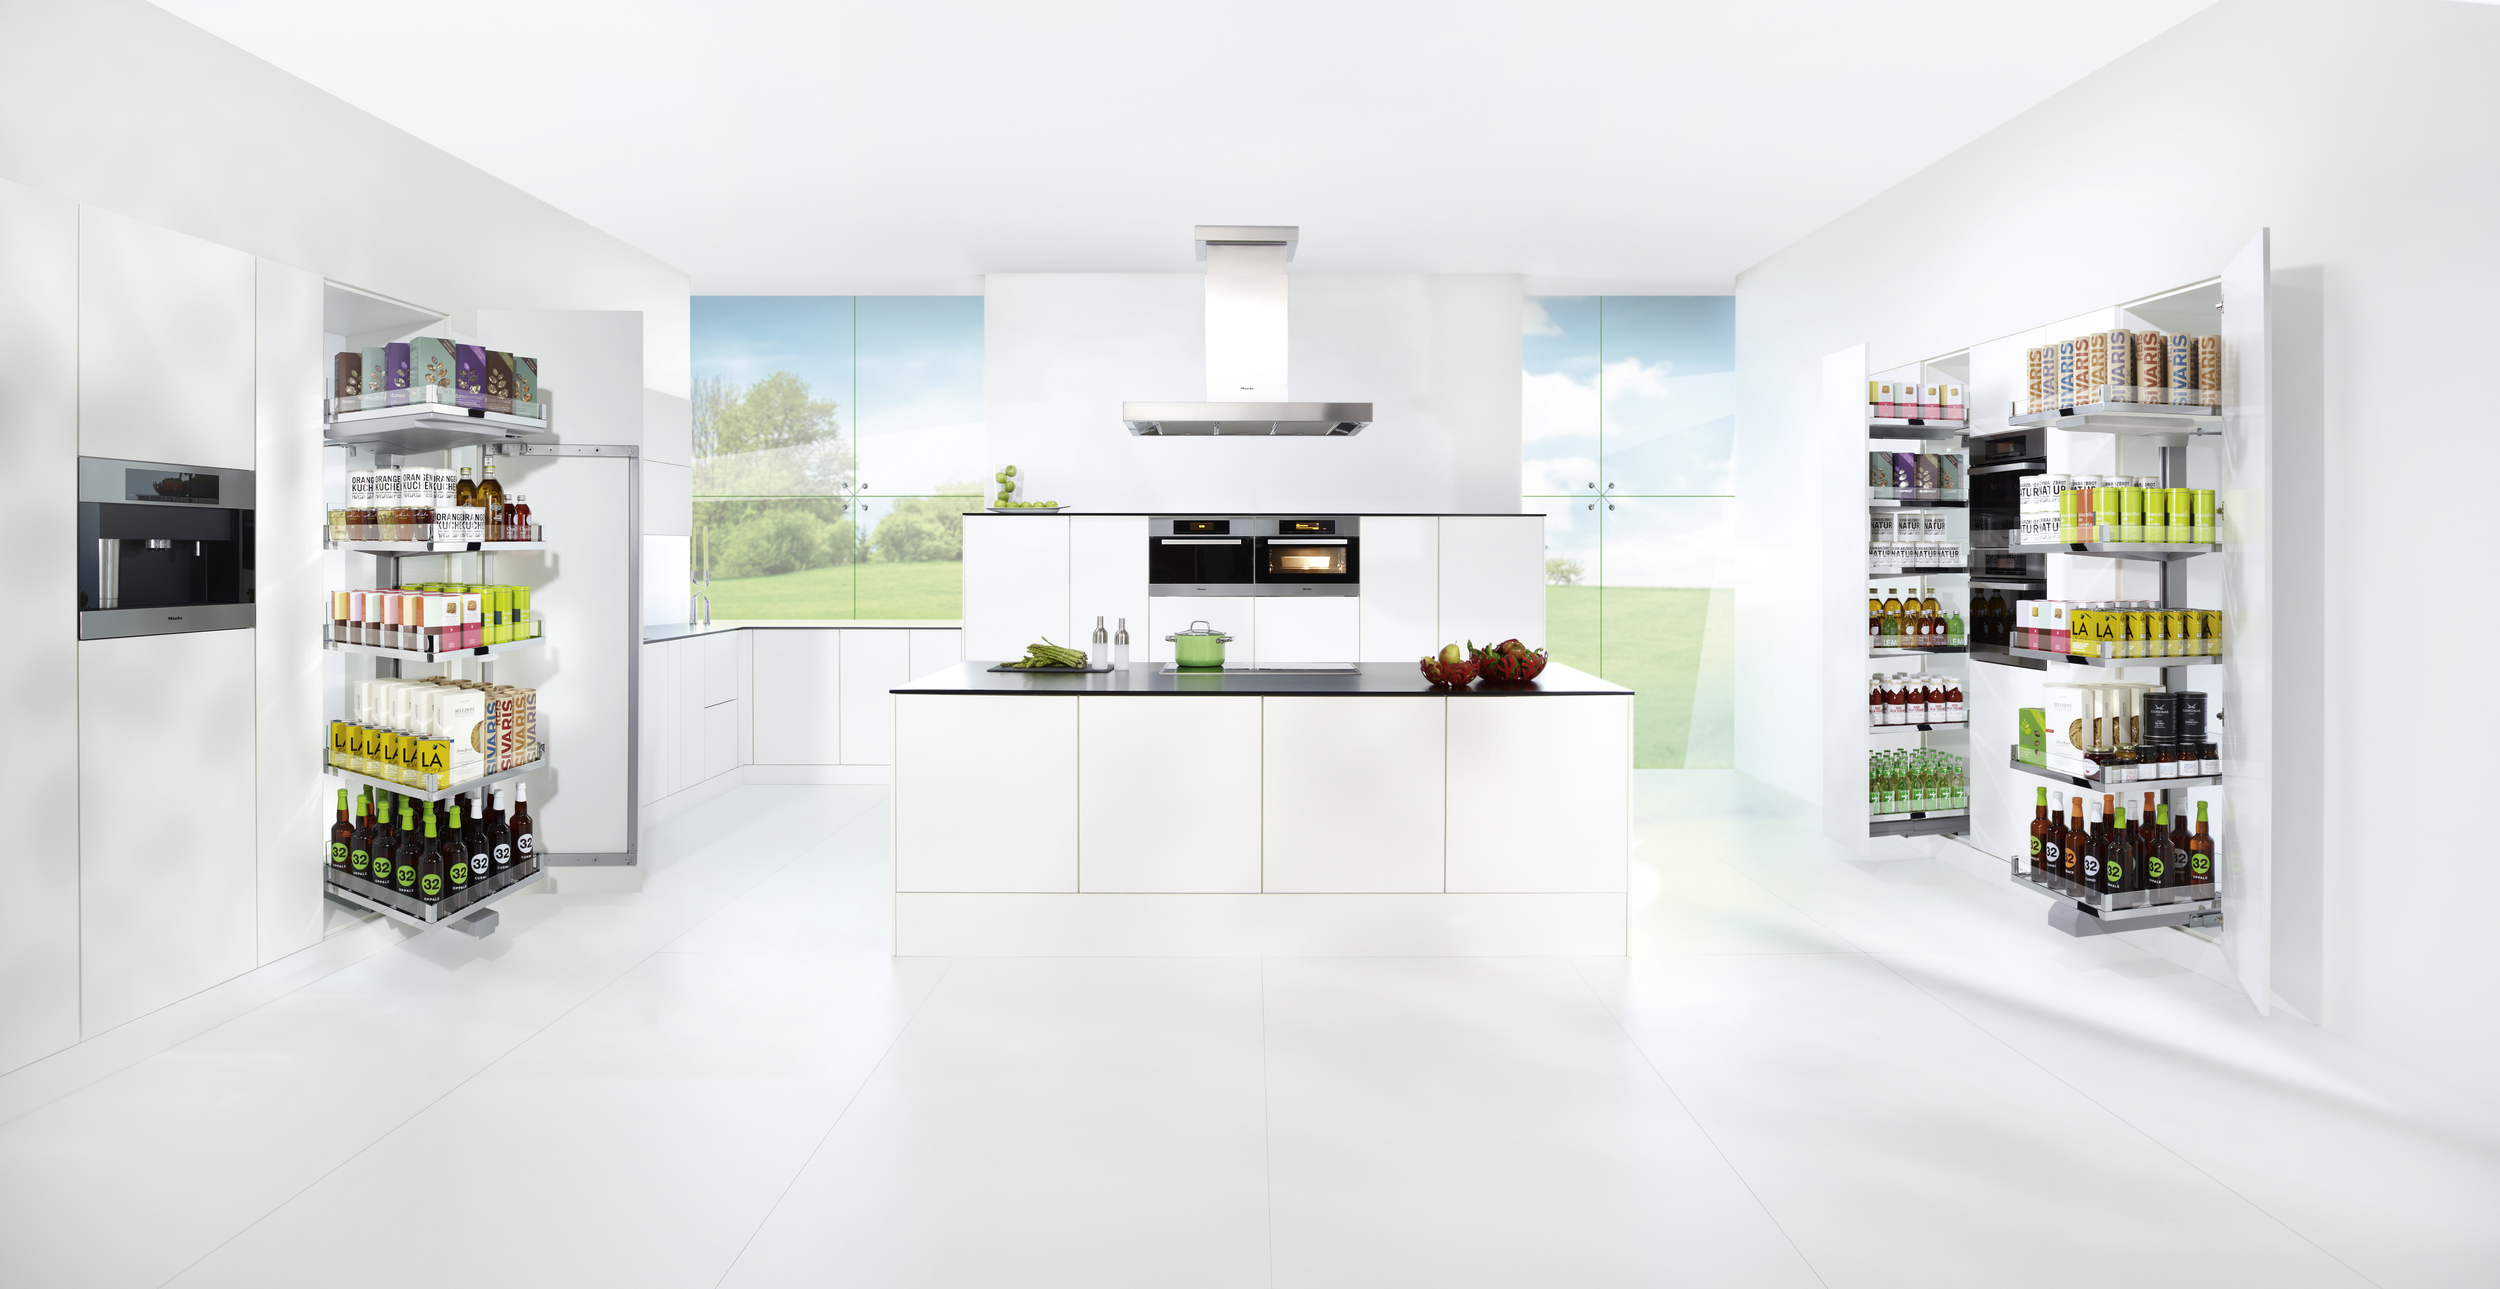 Extremely flexible and very good looking.  The CONVOY Lavido highlights the versatility of the whole CONVOY family. Lavido moves independently of the door so that it can be used effectively in varying cabinet designs, including sliding doors.  This tall pullout is an elegant storage solution not only for contemporary kitchens, but also for dining rooms or offices.